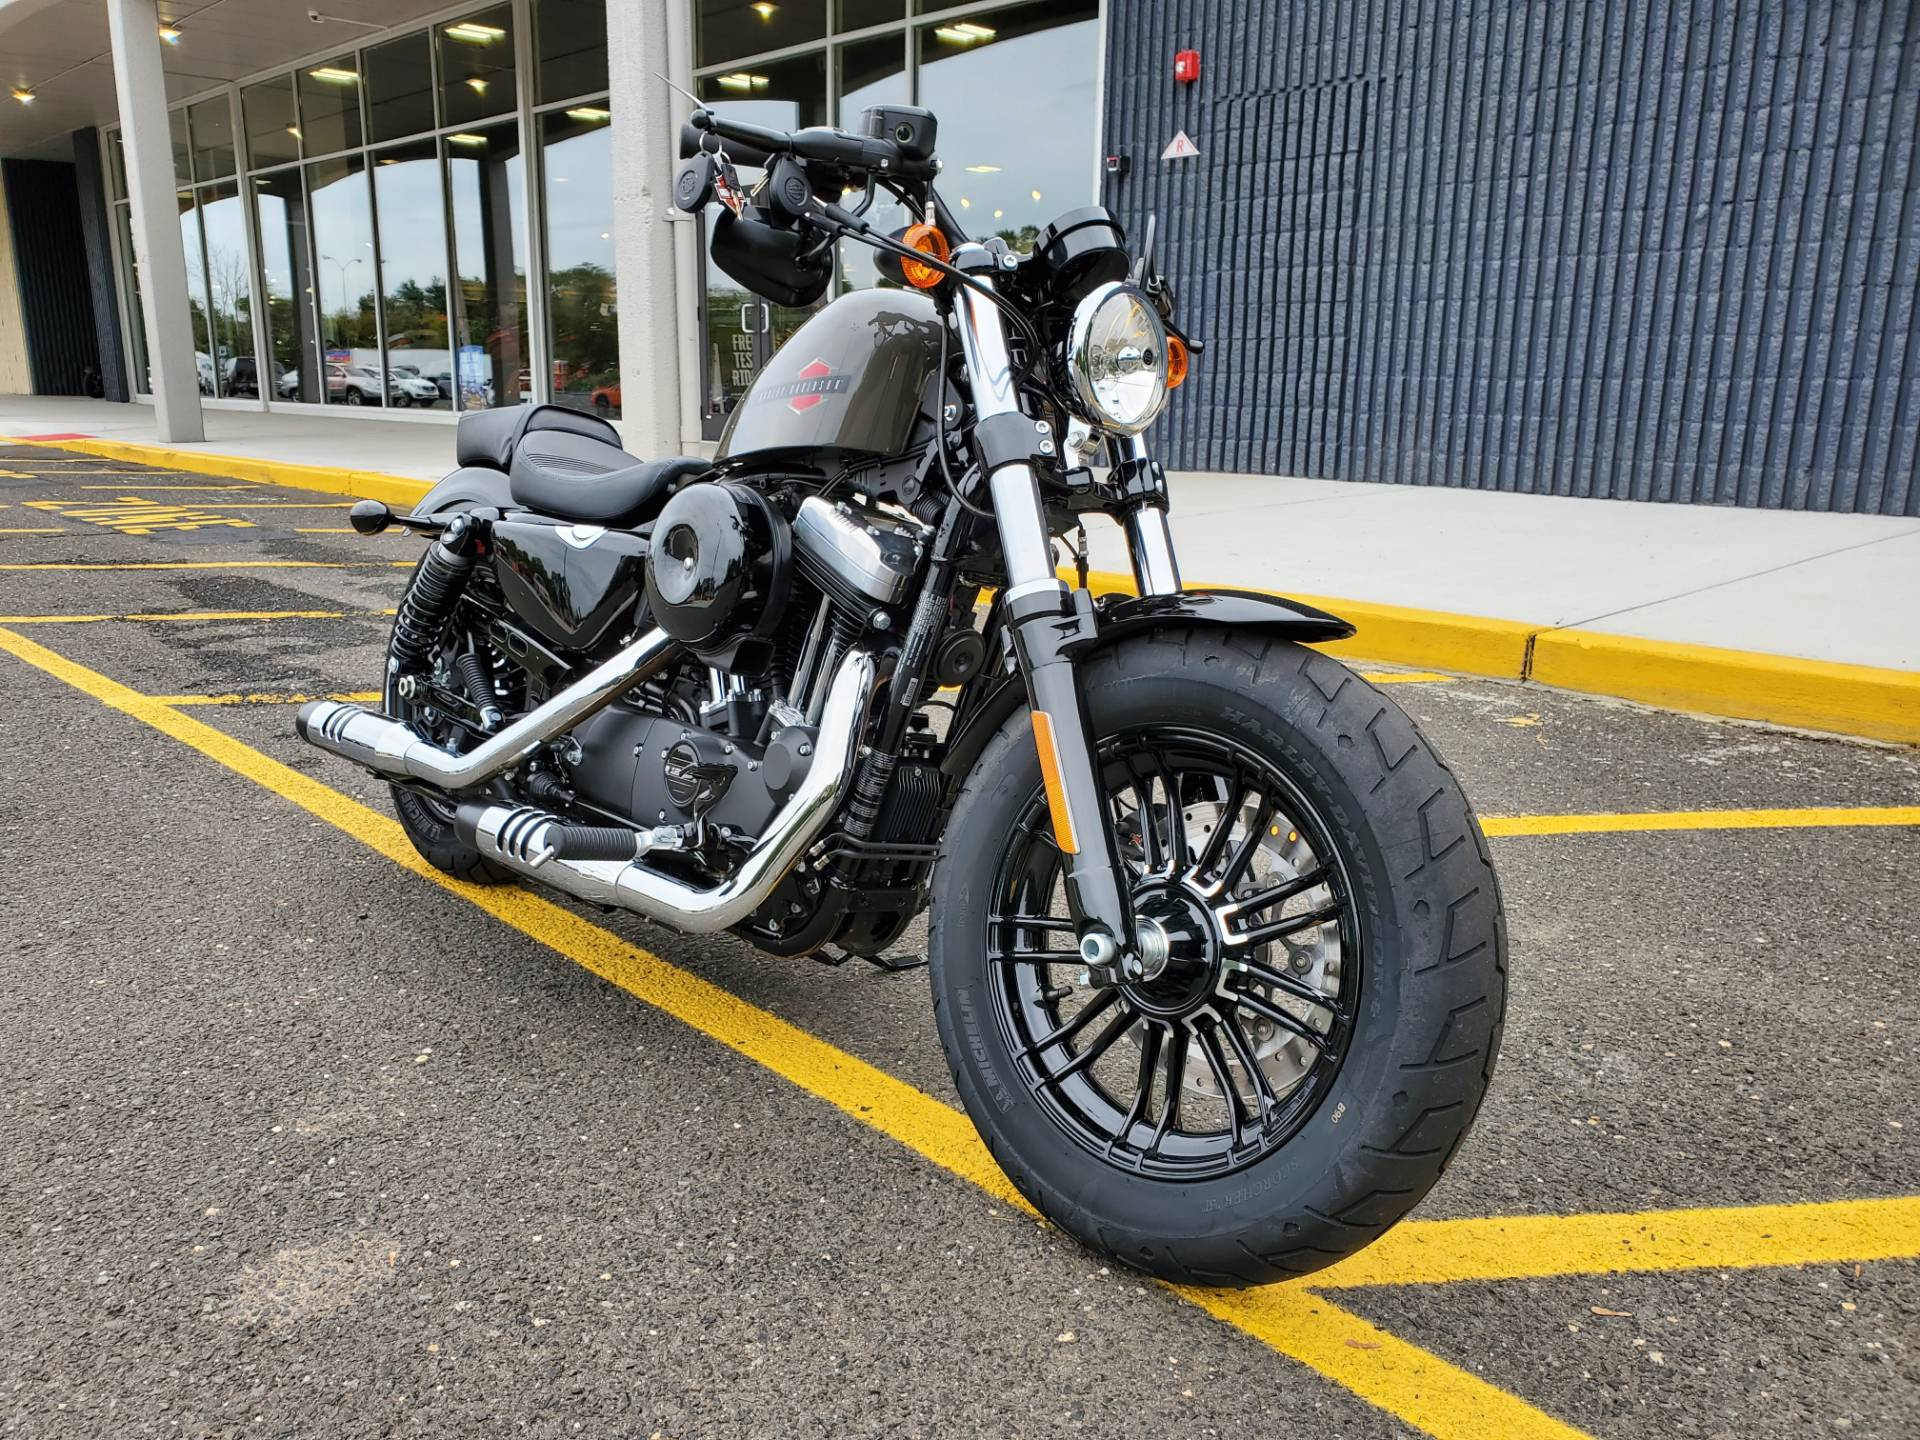 2019 Harley-Davidson Forty-Eight in West Long Branch, New Jersey - Photo 3